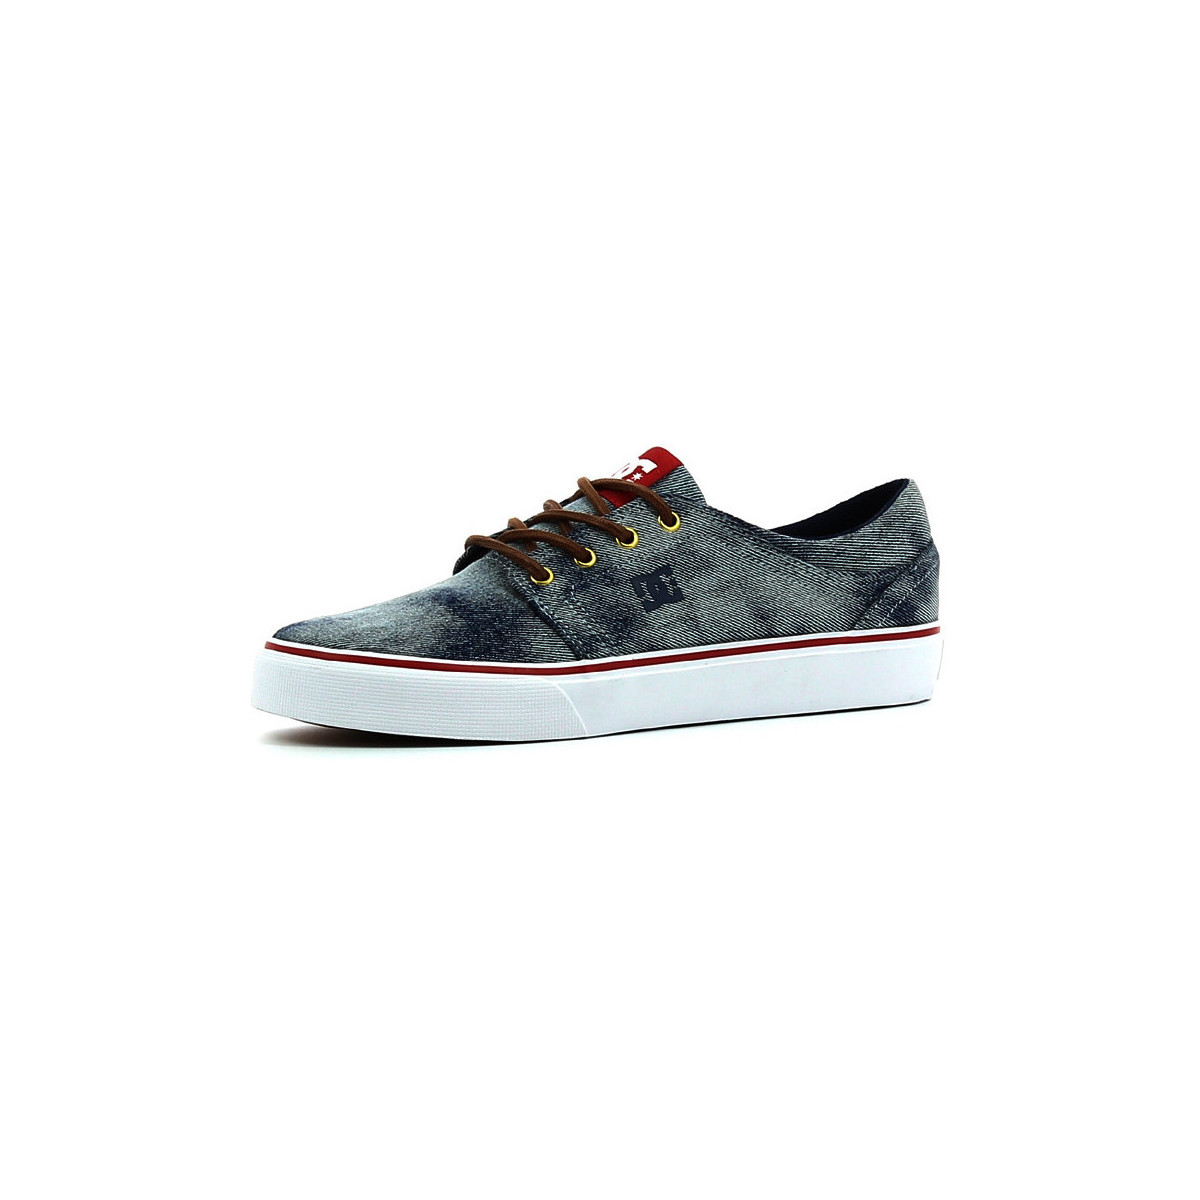 DC Shoes Trase TX Blau - Schuhe Sneaker Low  25,20 €